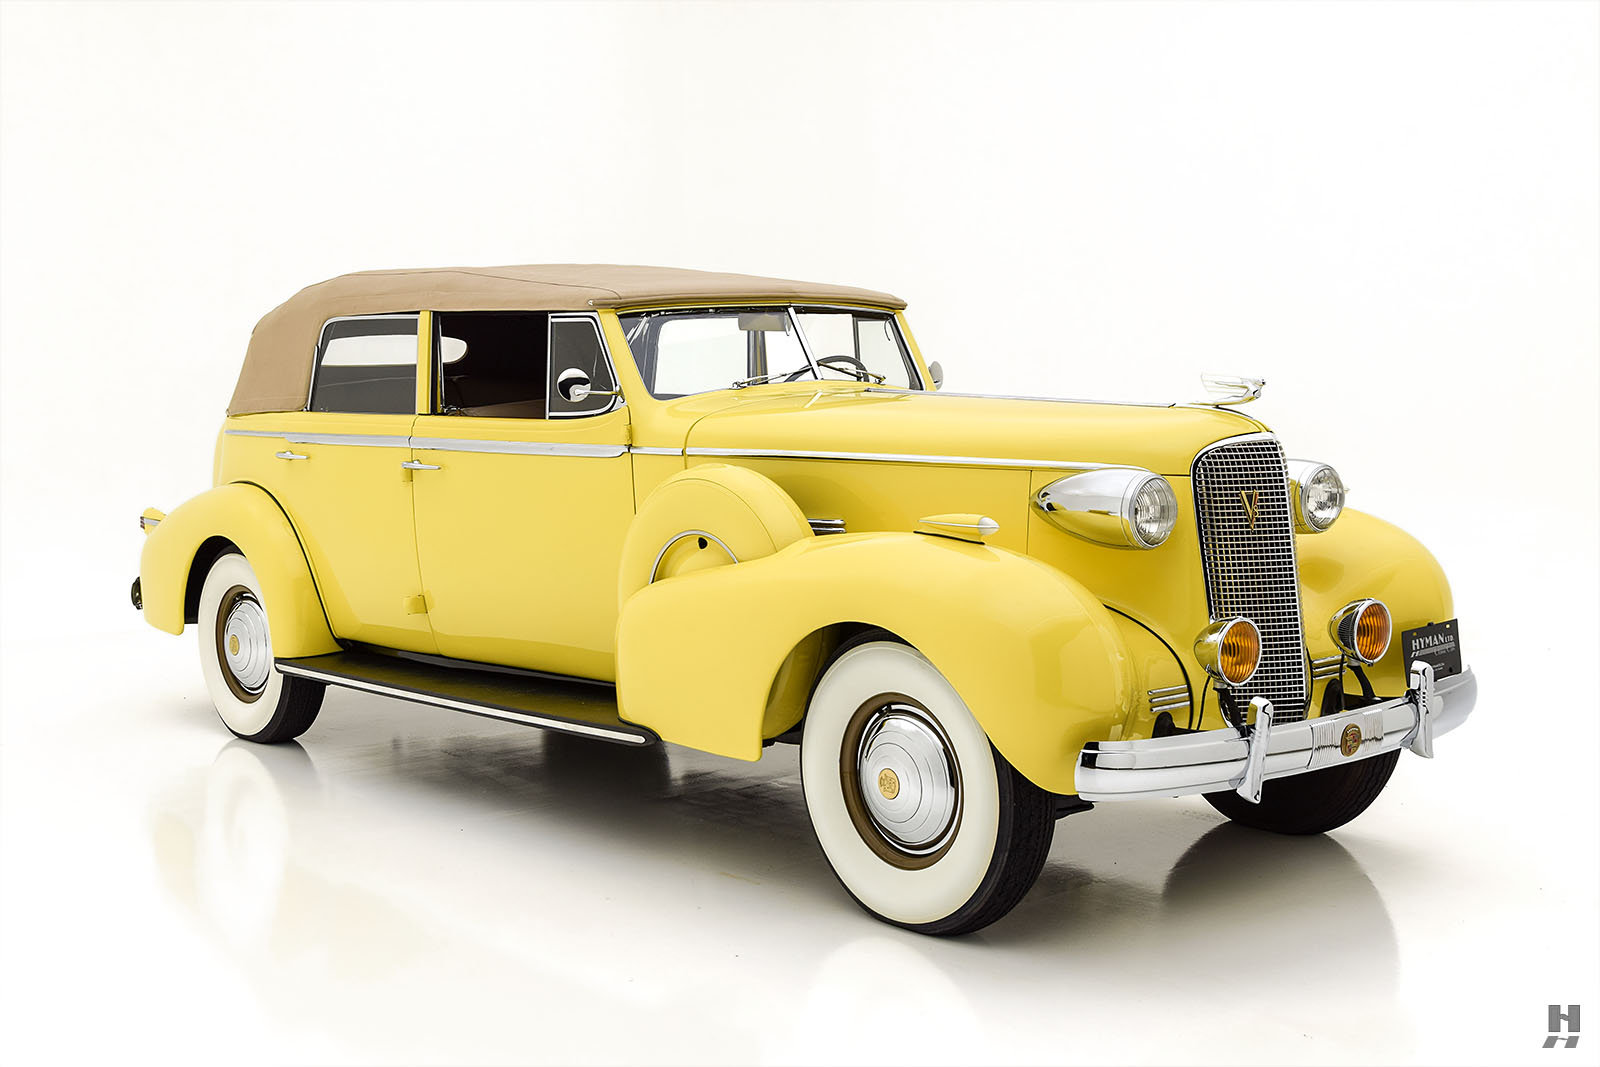 1937 CADILLAC SERIES 75 CONVERTIBLE SEDAN For Sale (picture 2 of 6)